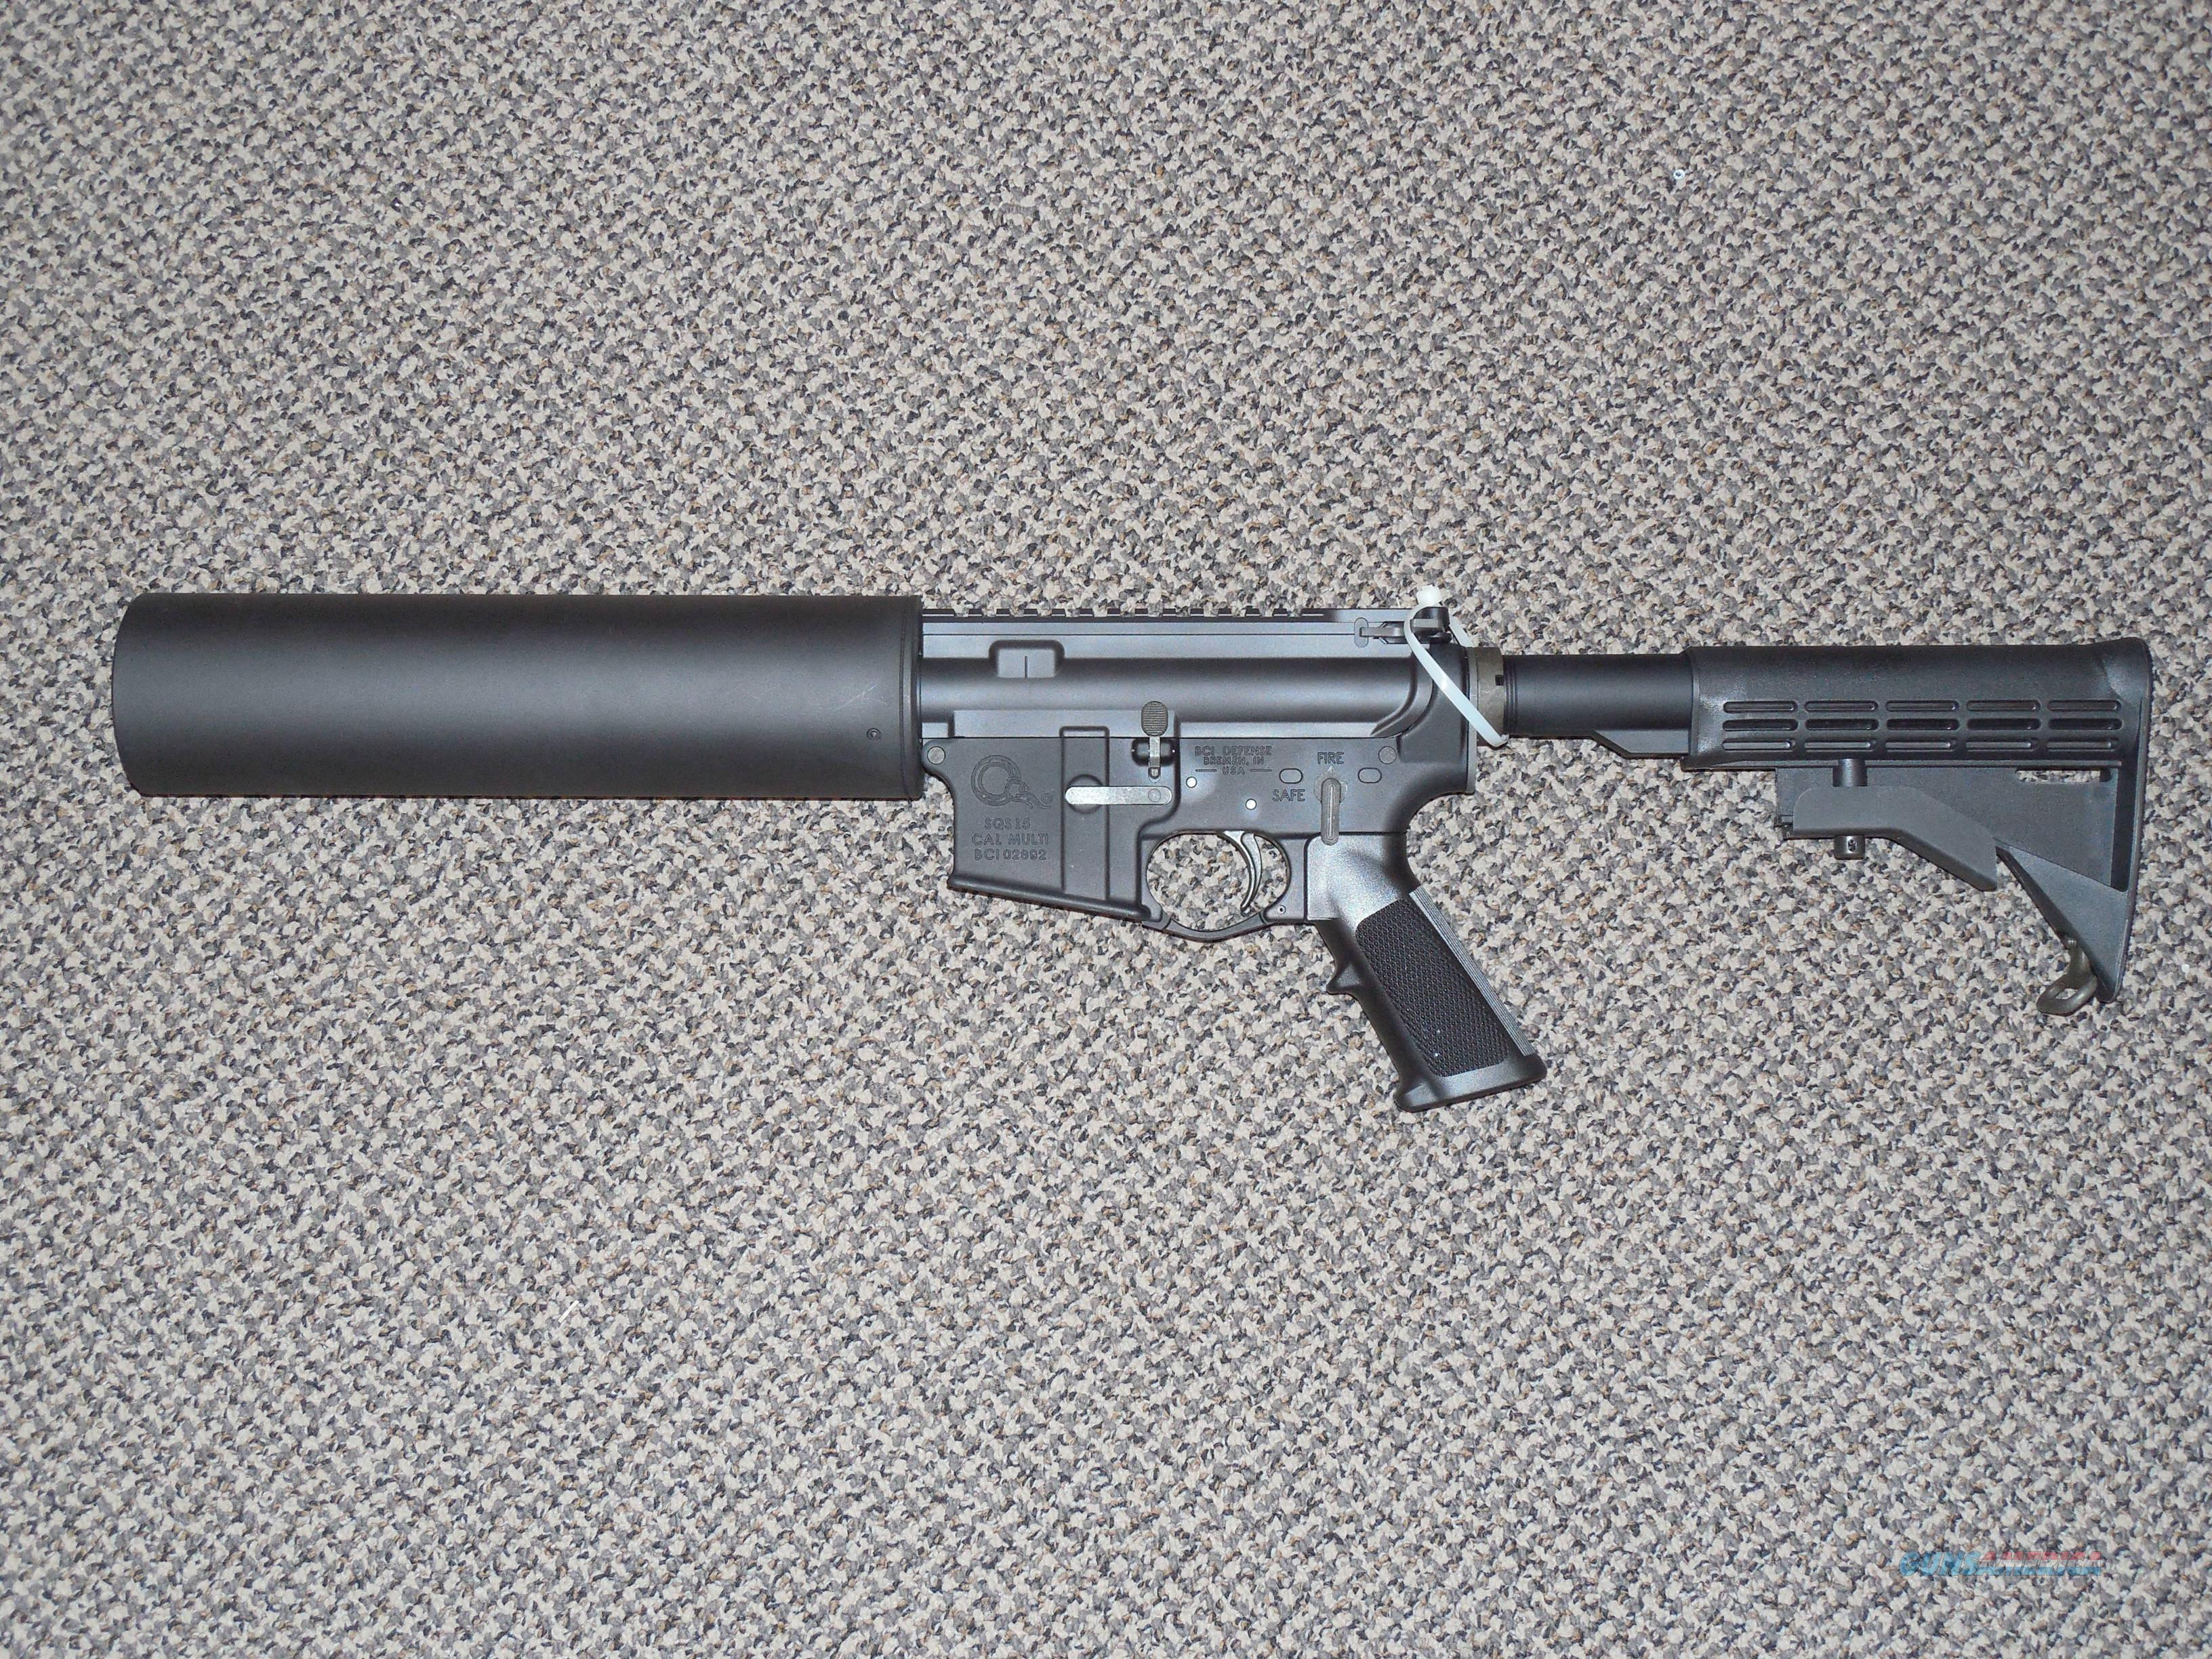 "X-PRODUCTS ""CAN LAUNCHER"" COMPLETE WITH BCI LOWER  Guns > Rifles > AR-15 Rifles - Small Manufacturers > Complete Rifle"